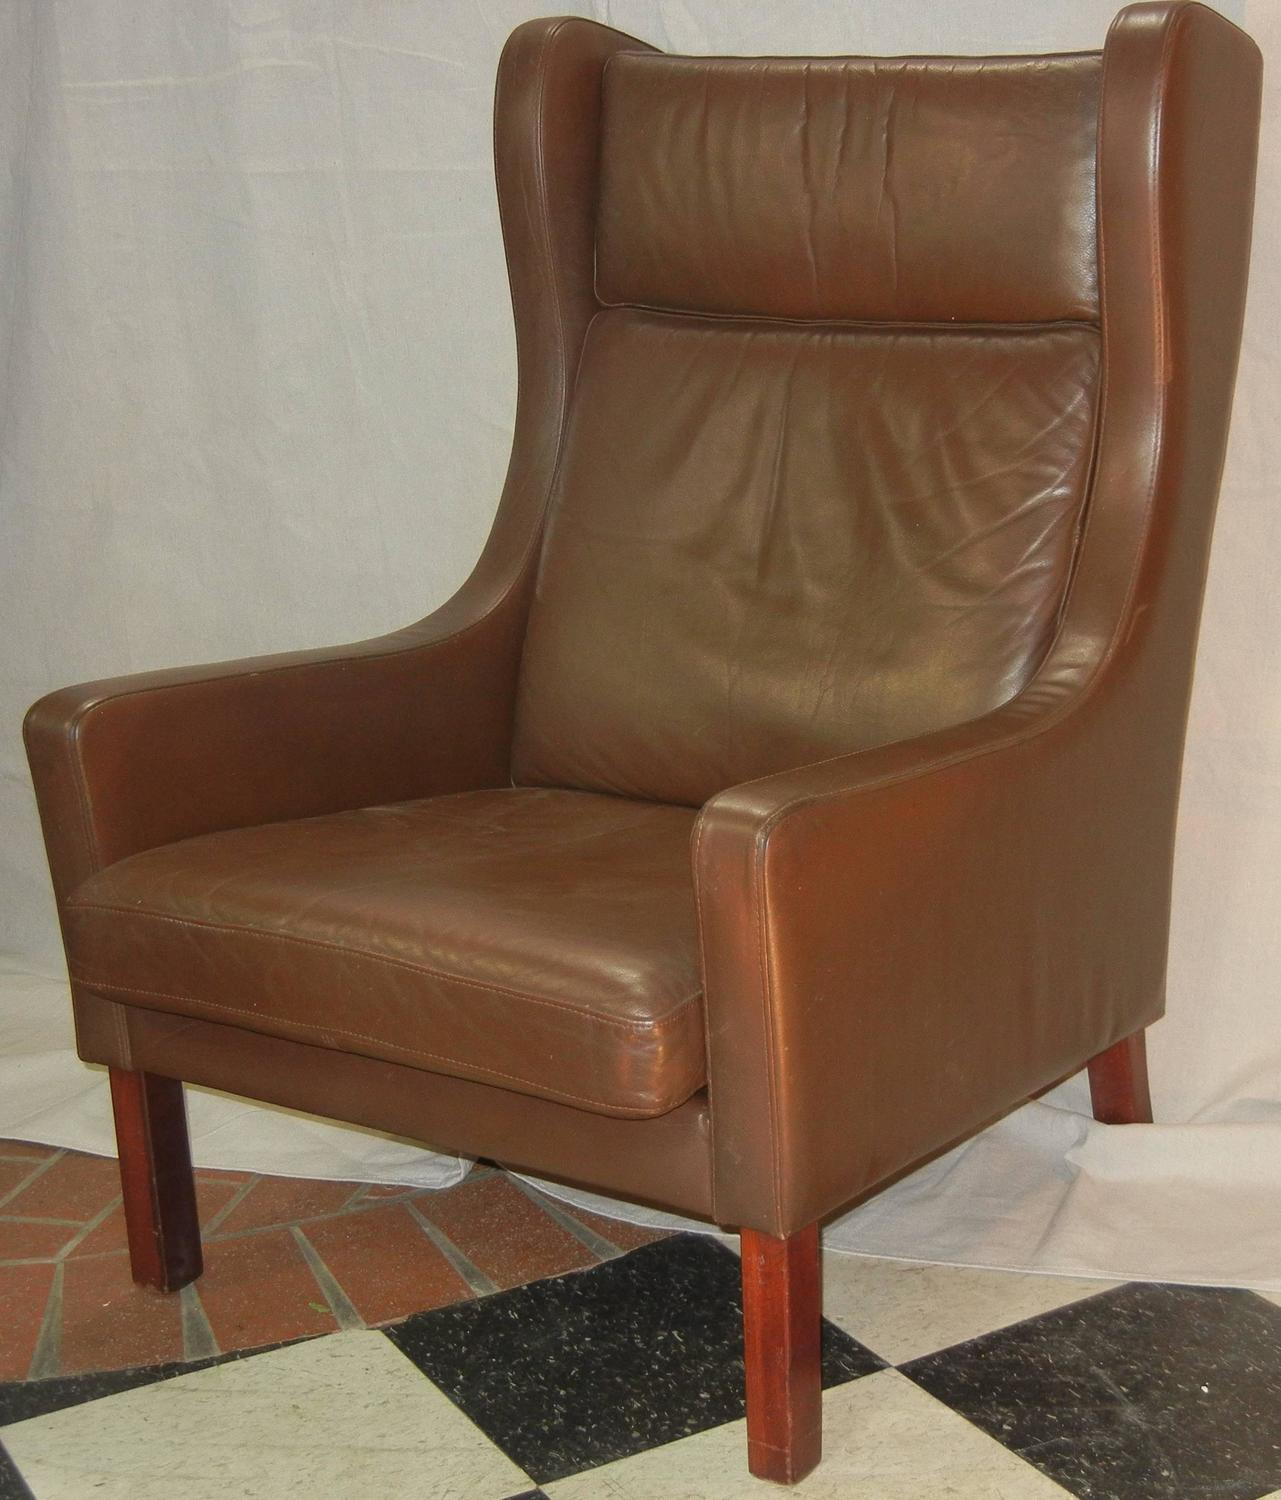 modern wingback chairs for sale retro office chair leather wing in danish børge mogensen style